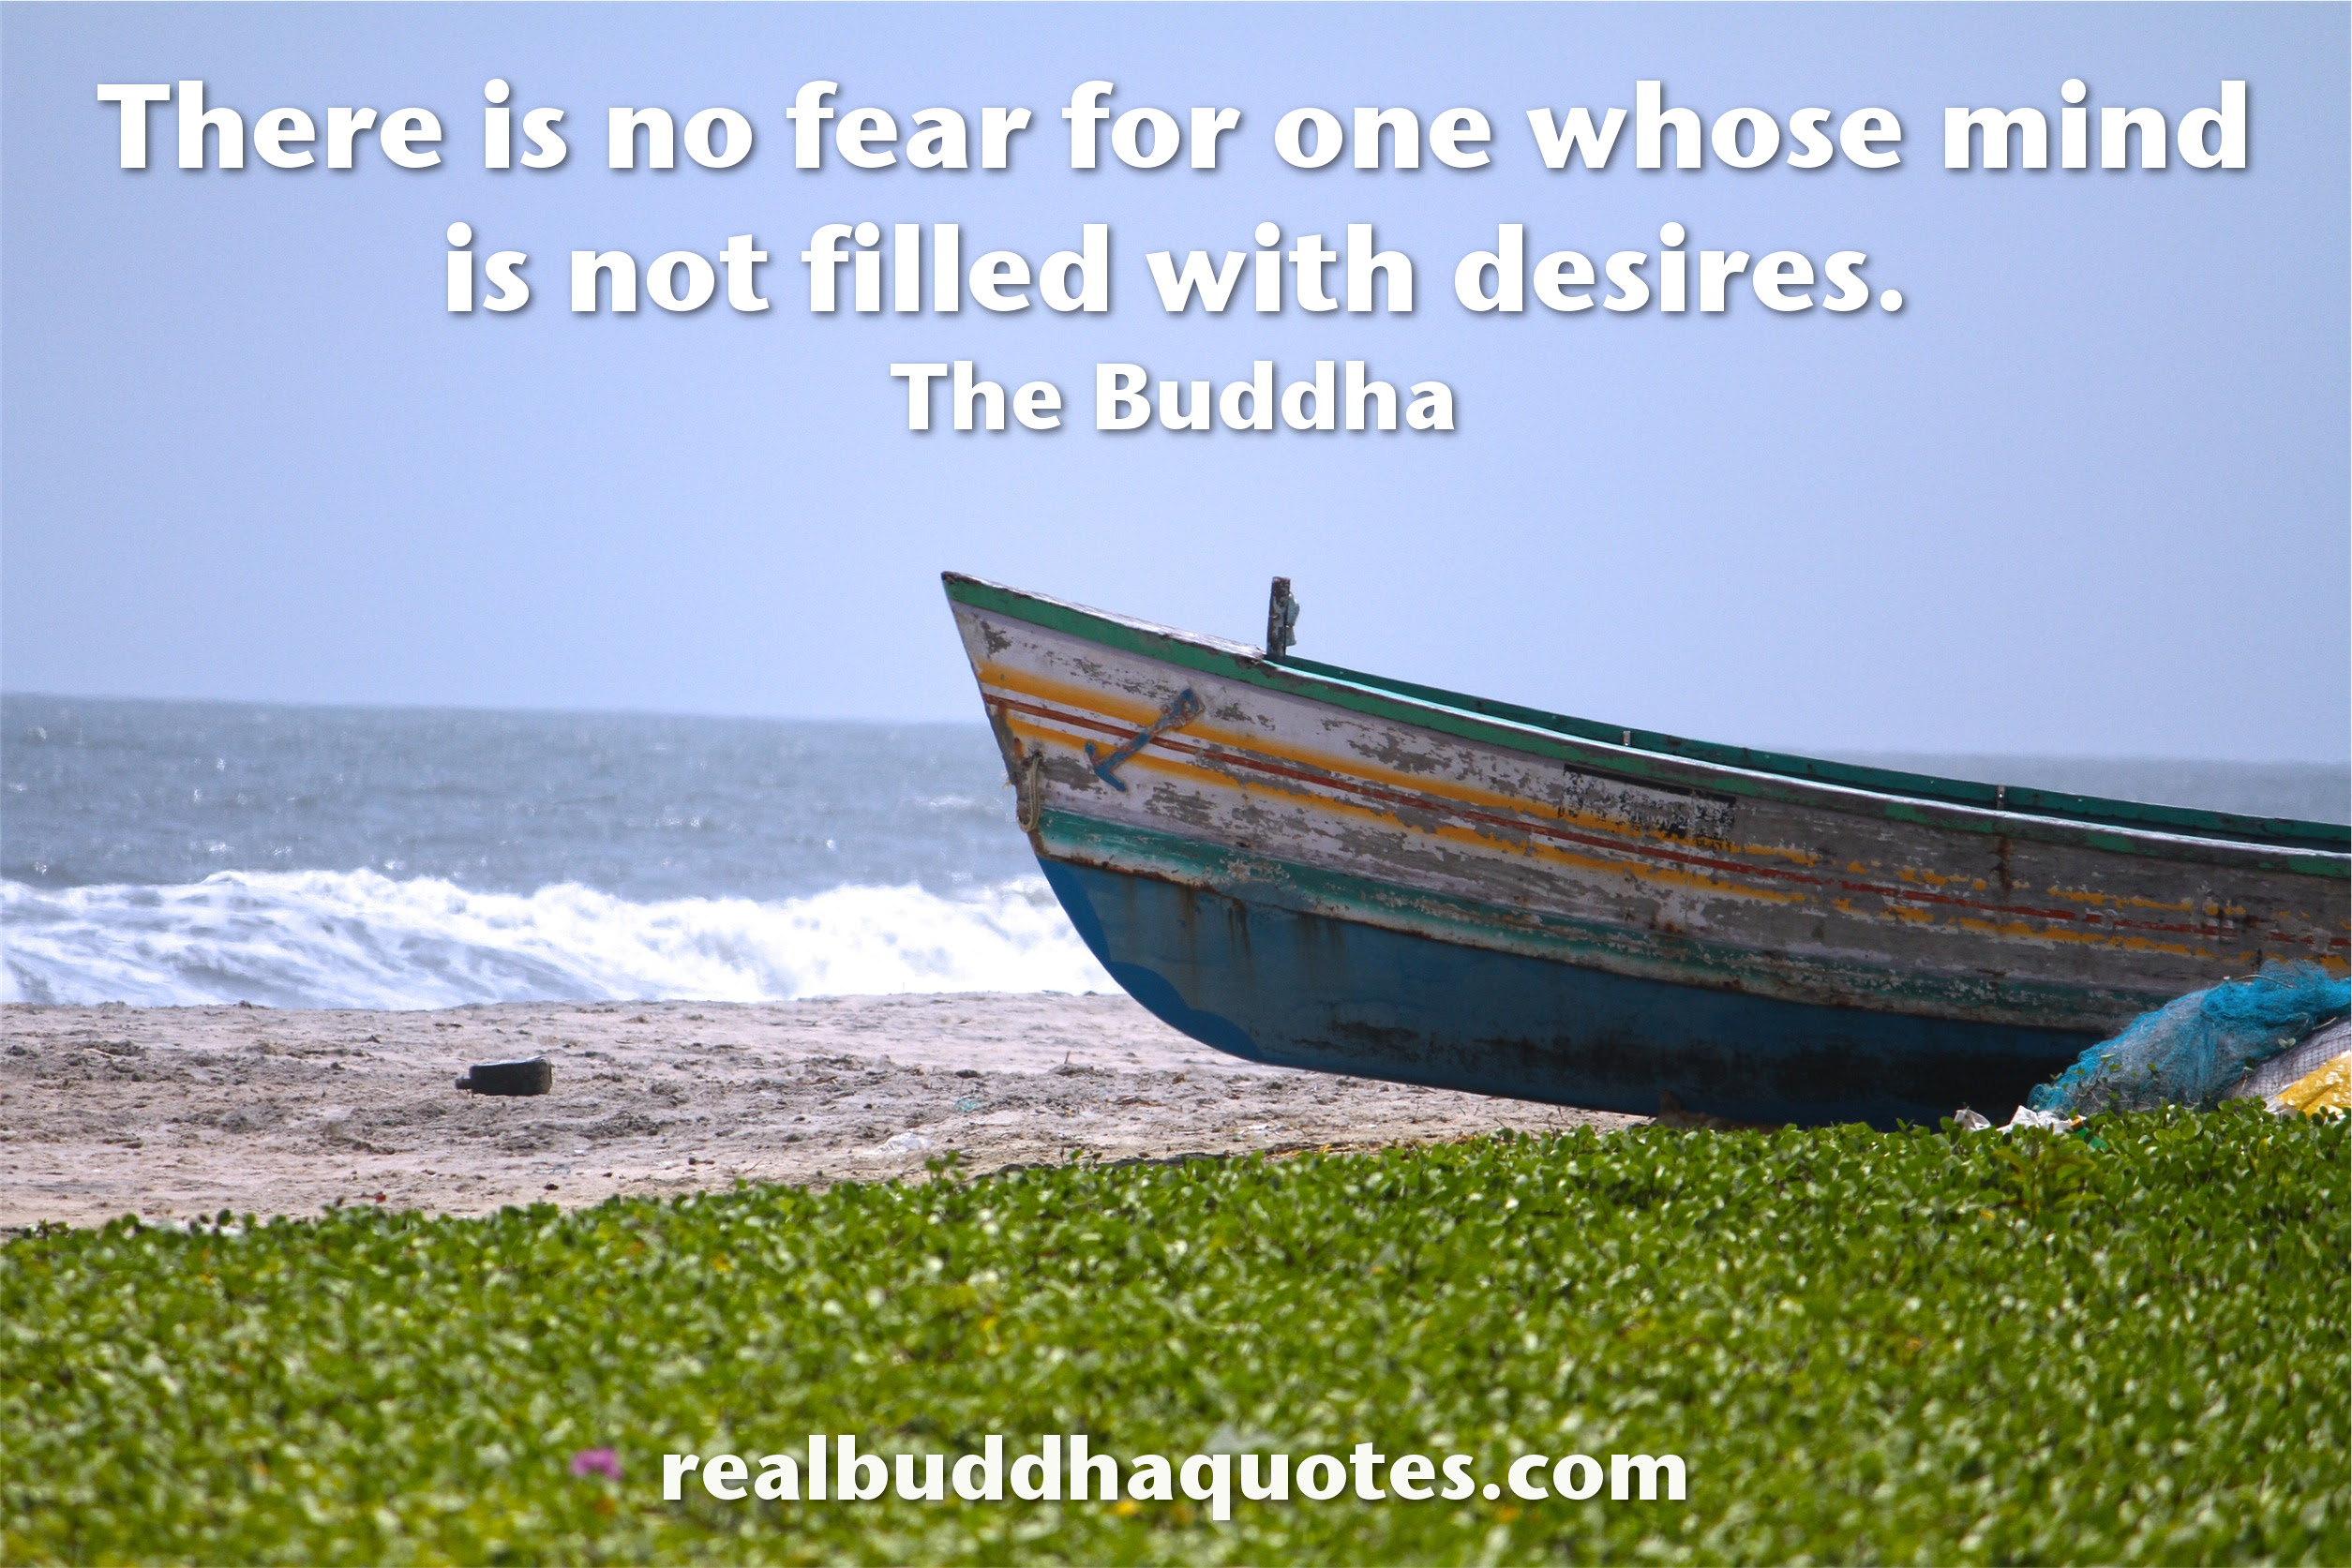 there is no fear for one whose mind is not filled with desires